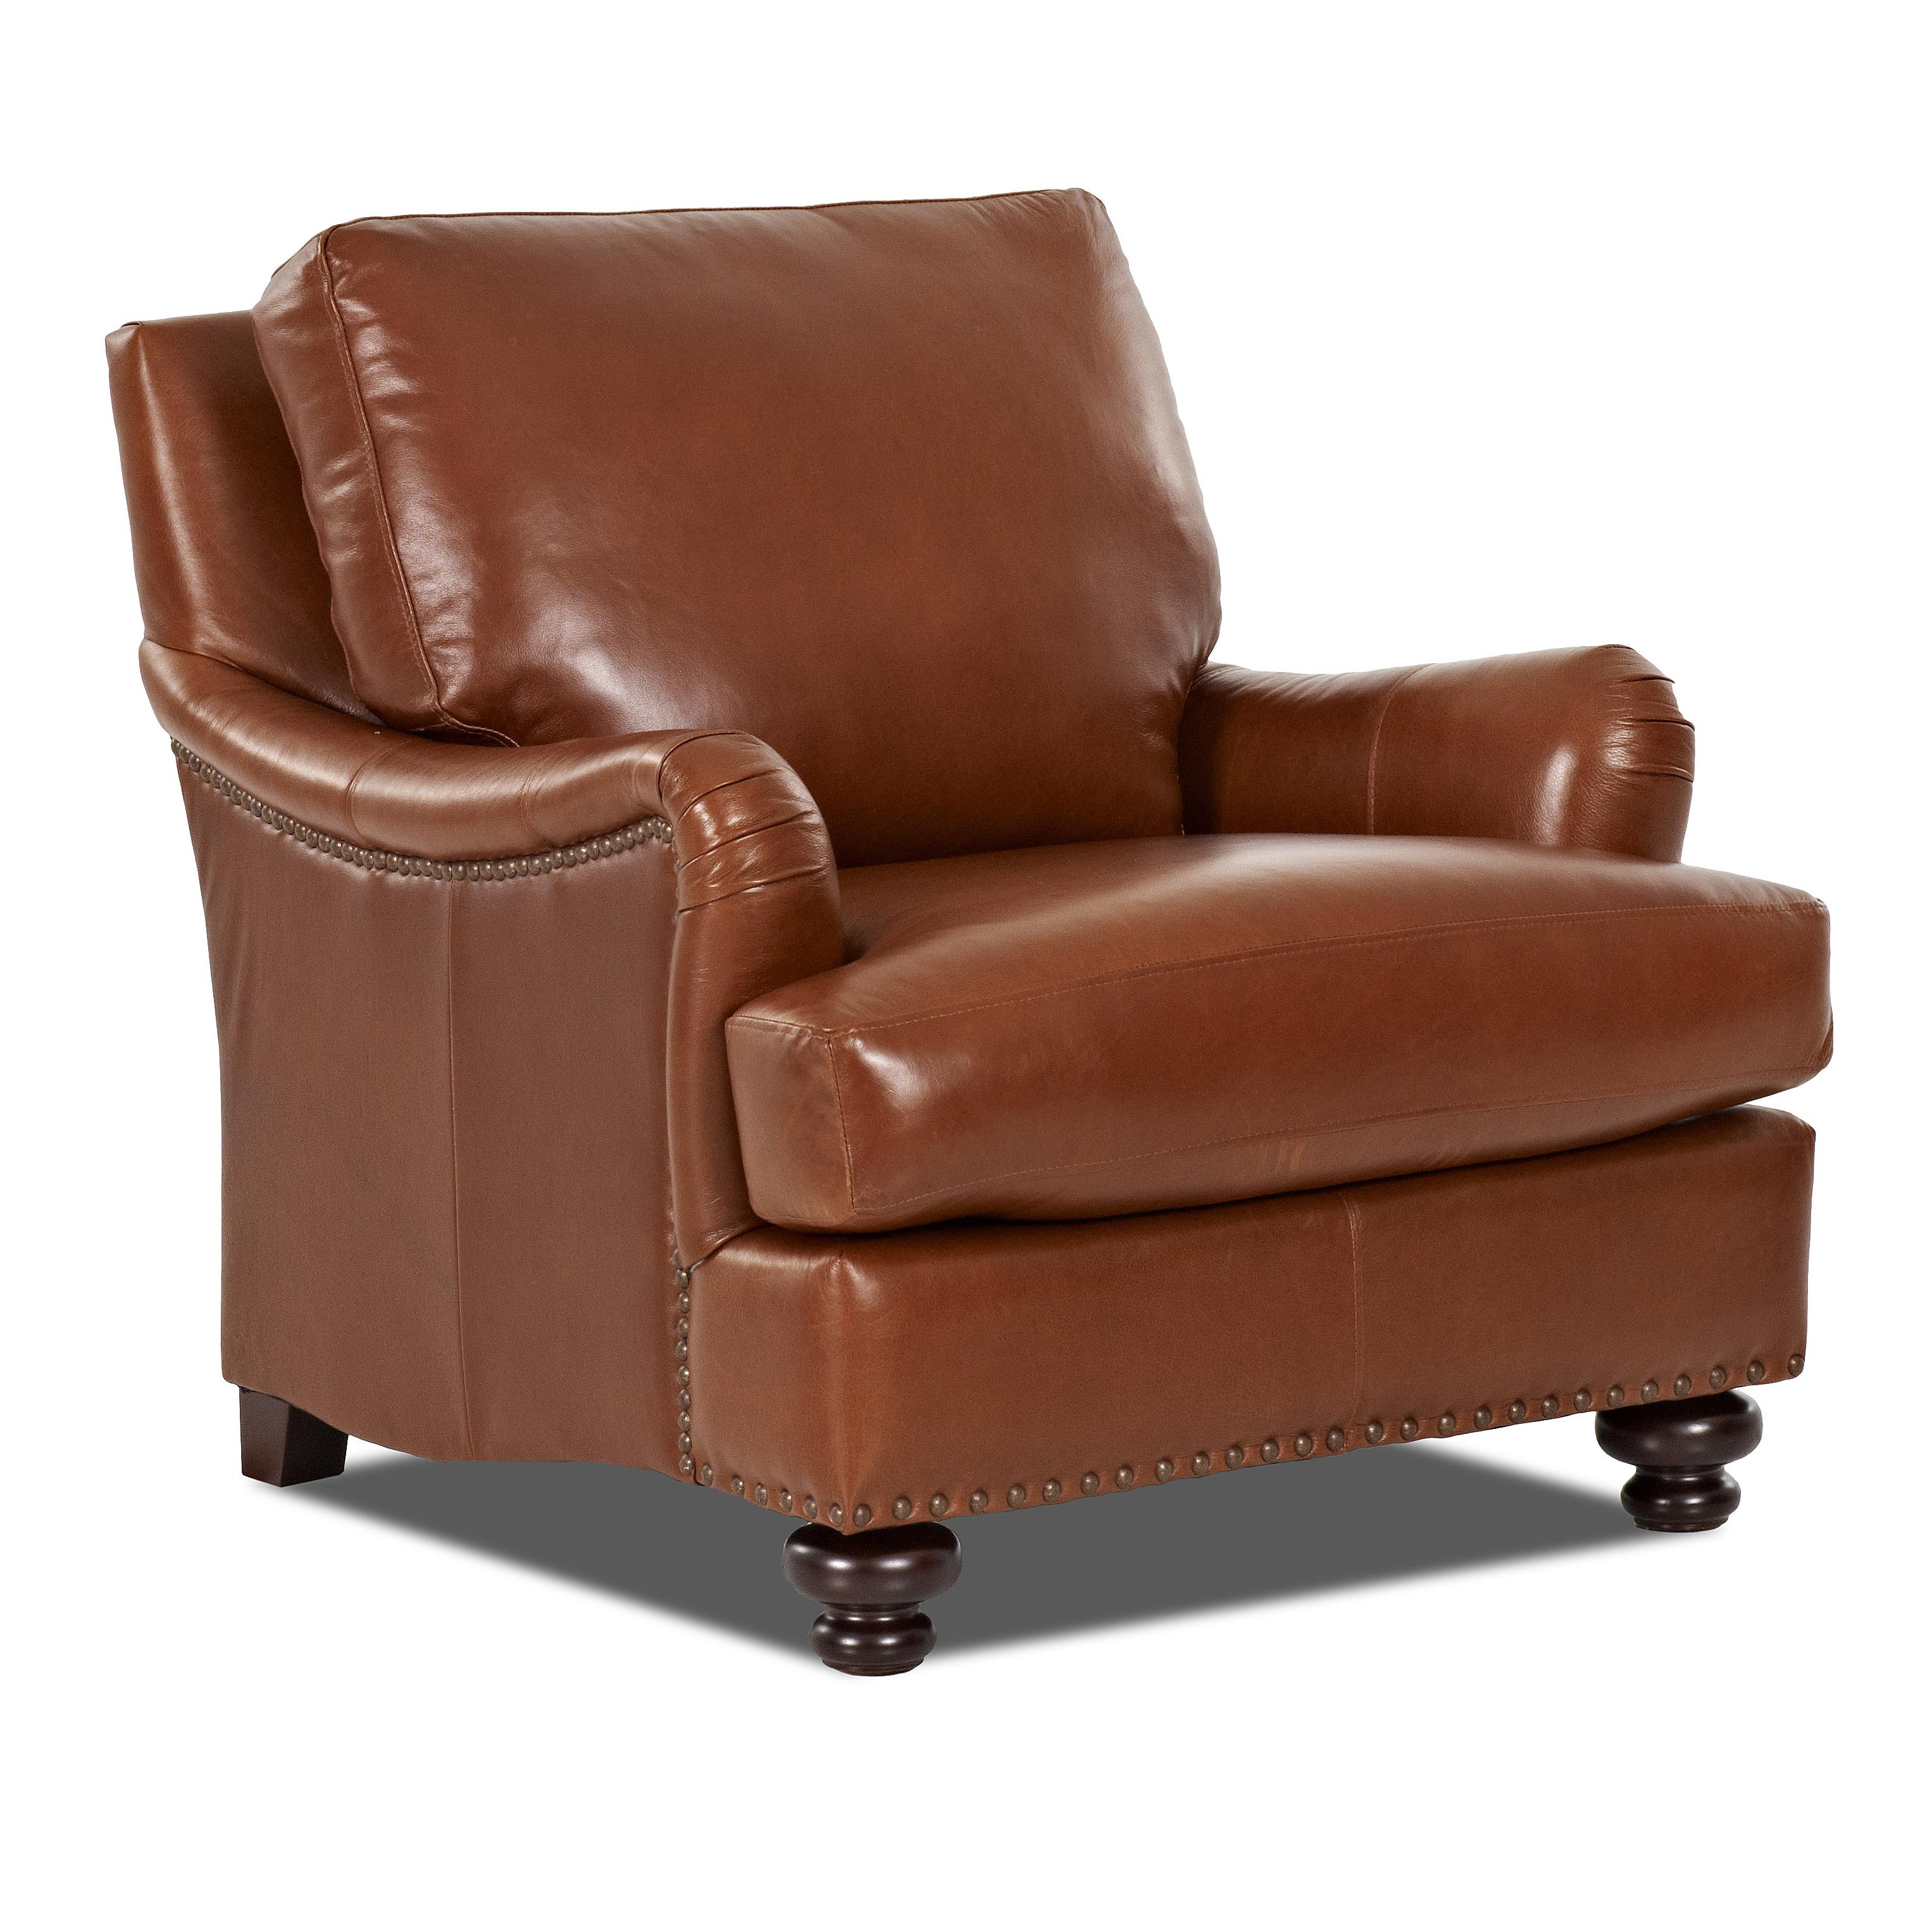 Klaussner Loxley Chair - Item Number: LT89910C-Savoy Chestnut